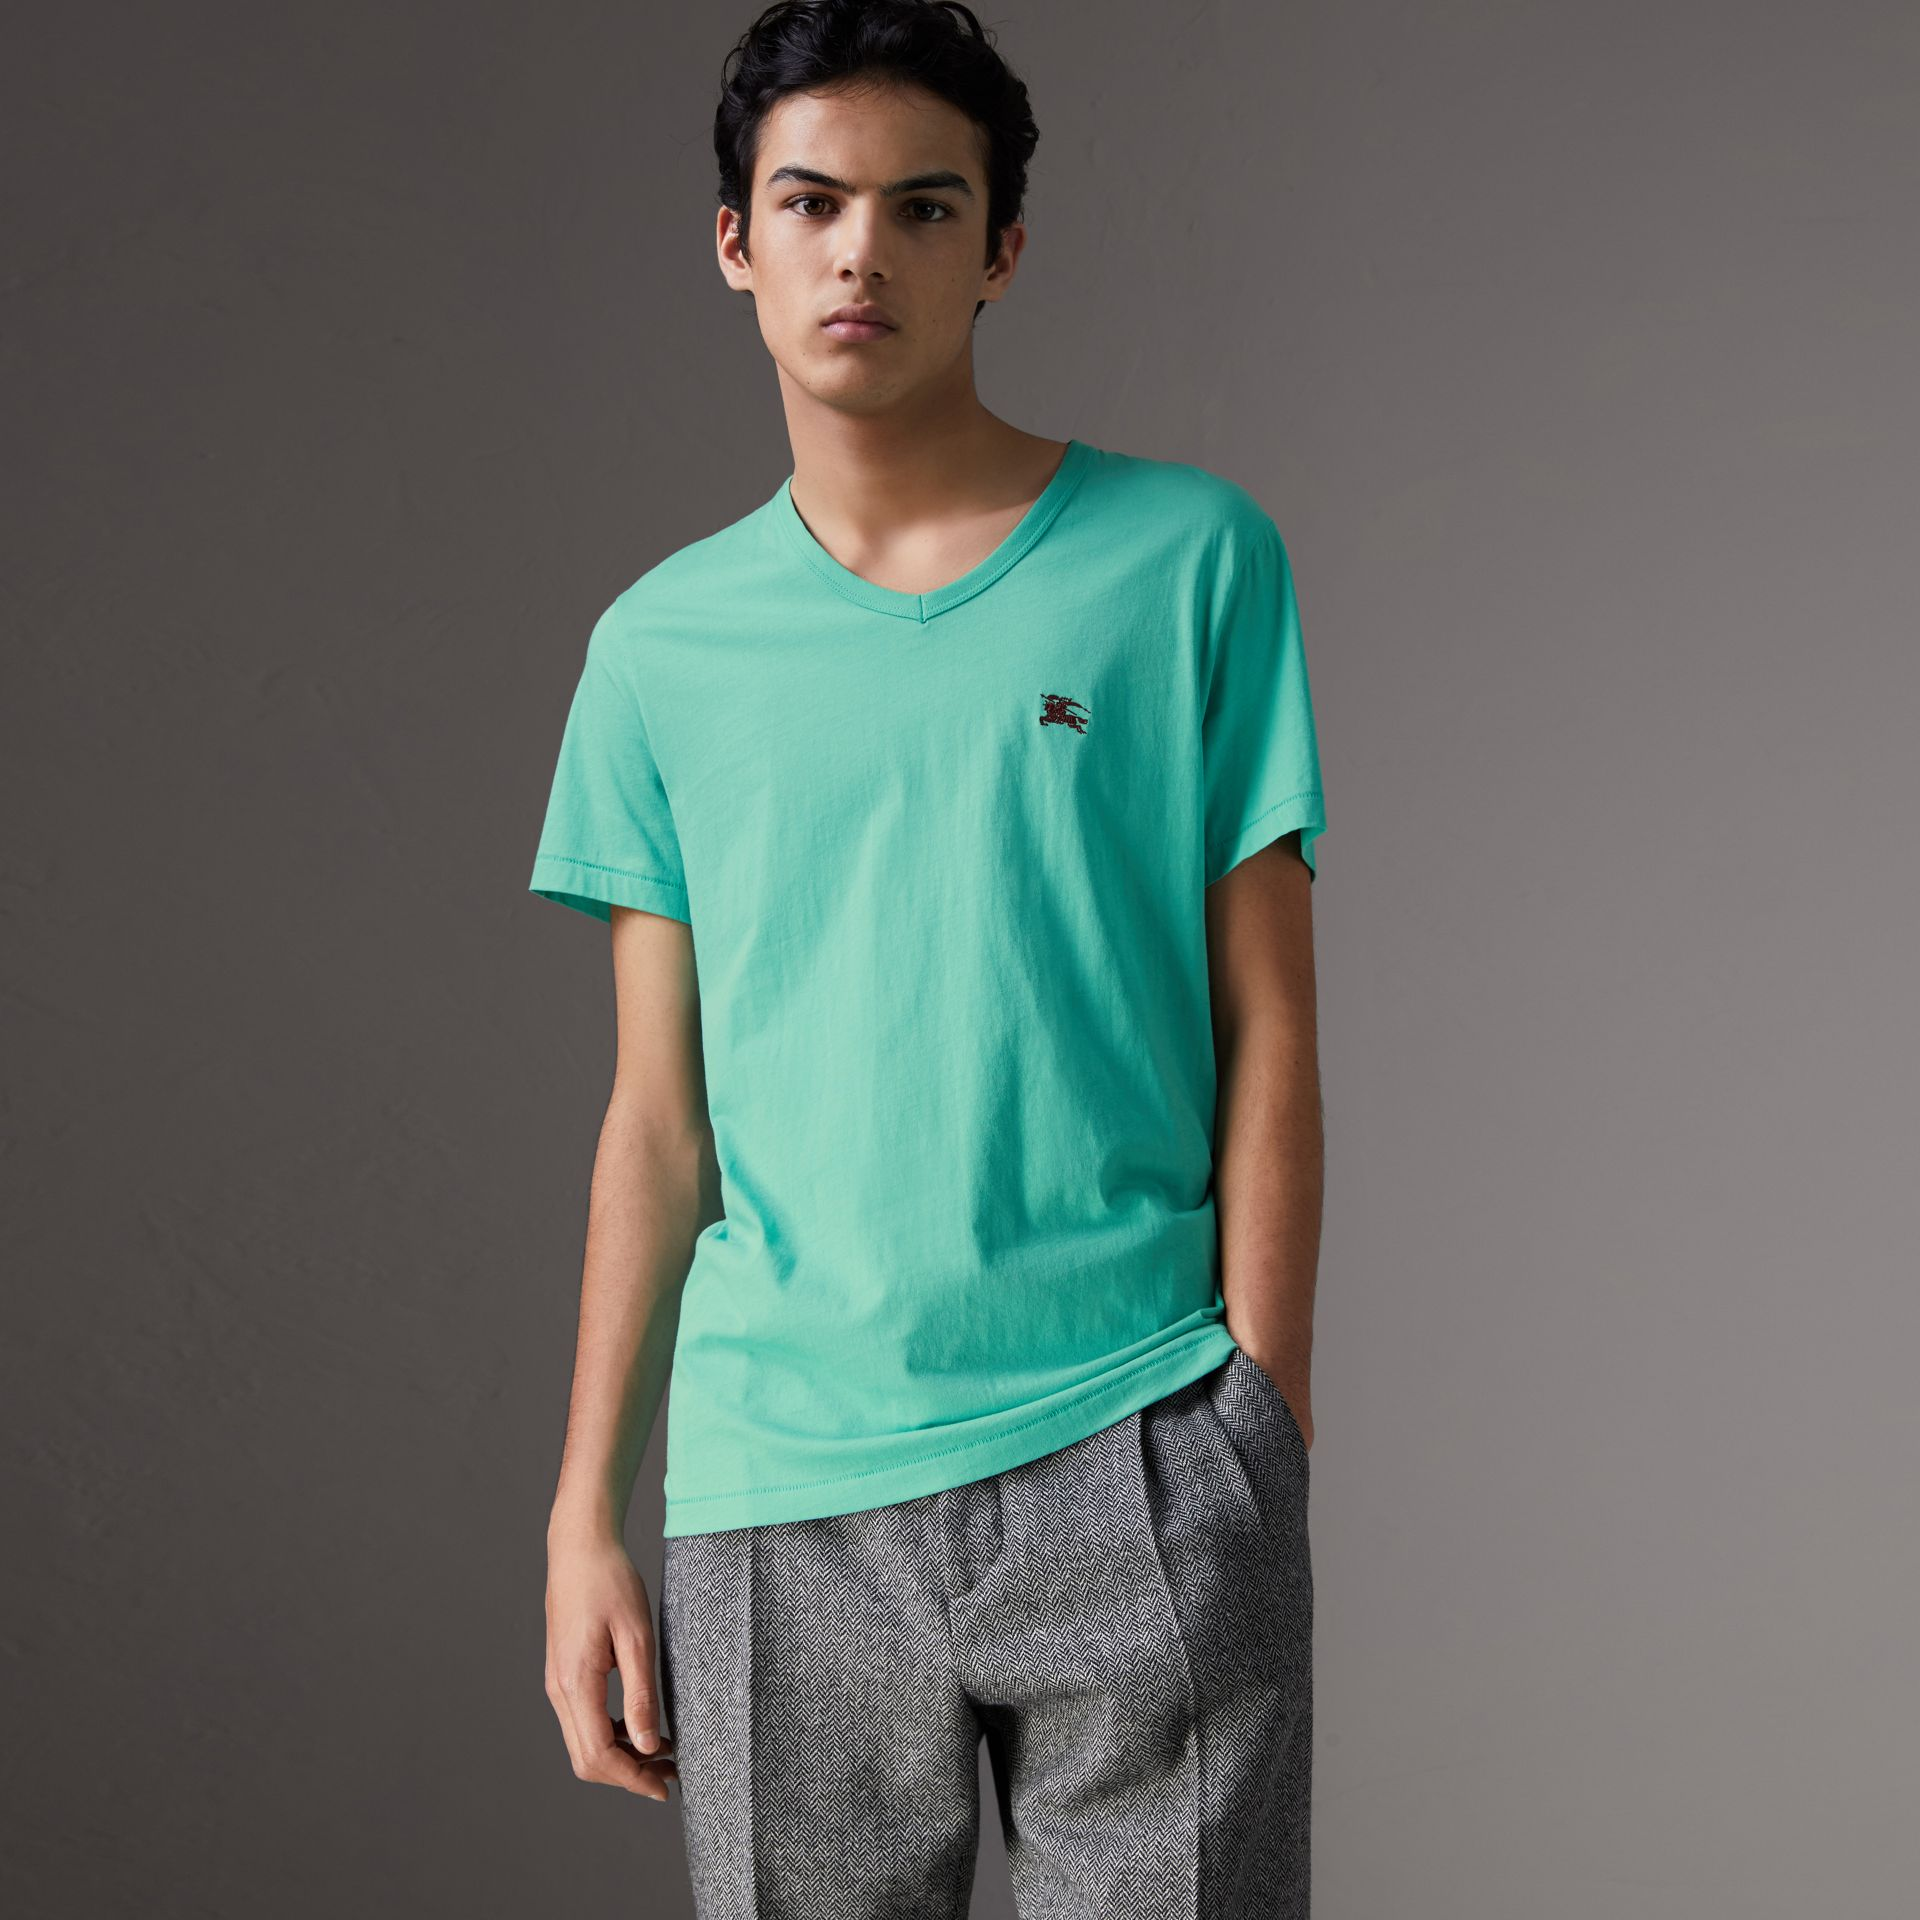 Cotton Jersey T-shirt in Turquoise - Men | Burberry United States - gallery image 0